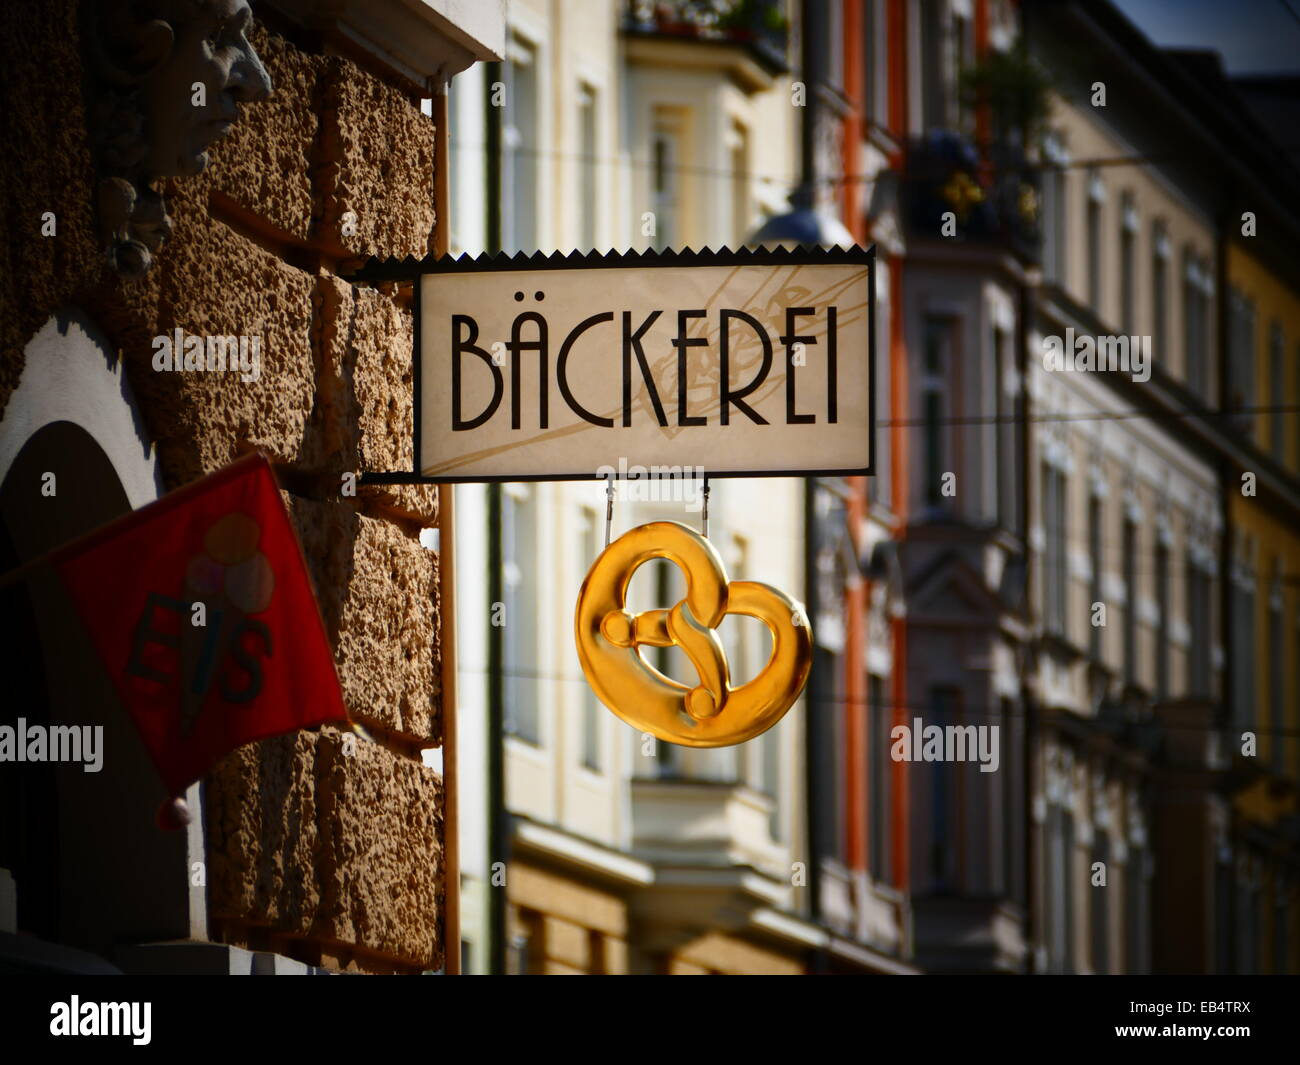 Germany Bakery shop sign - Stock Image